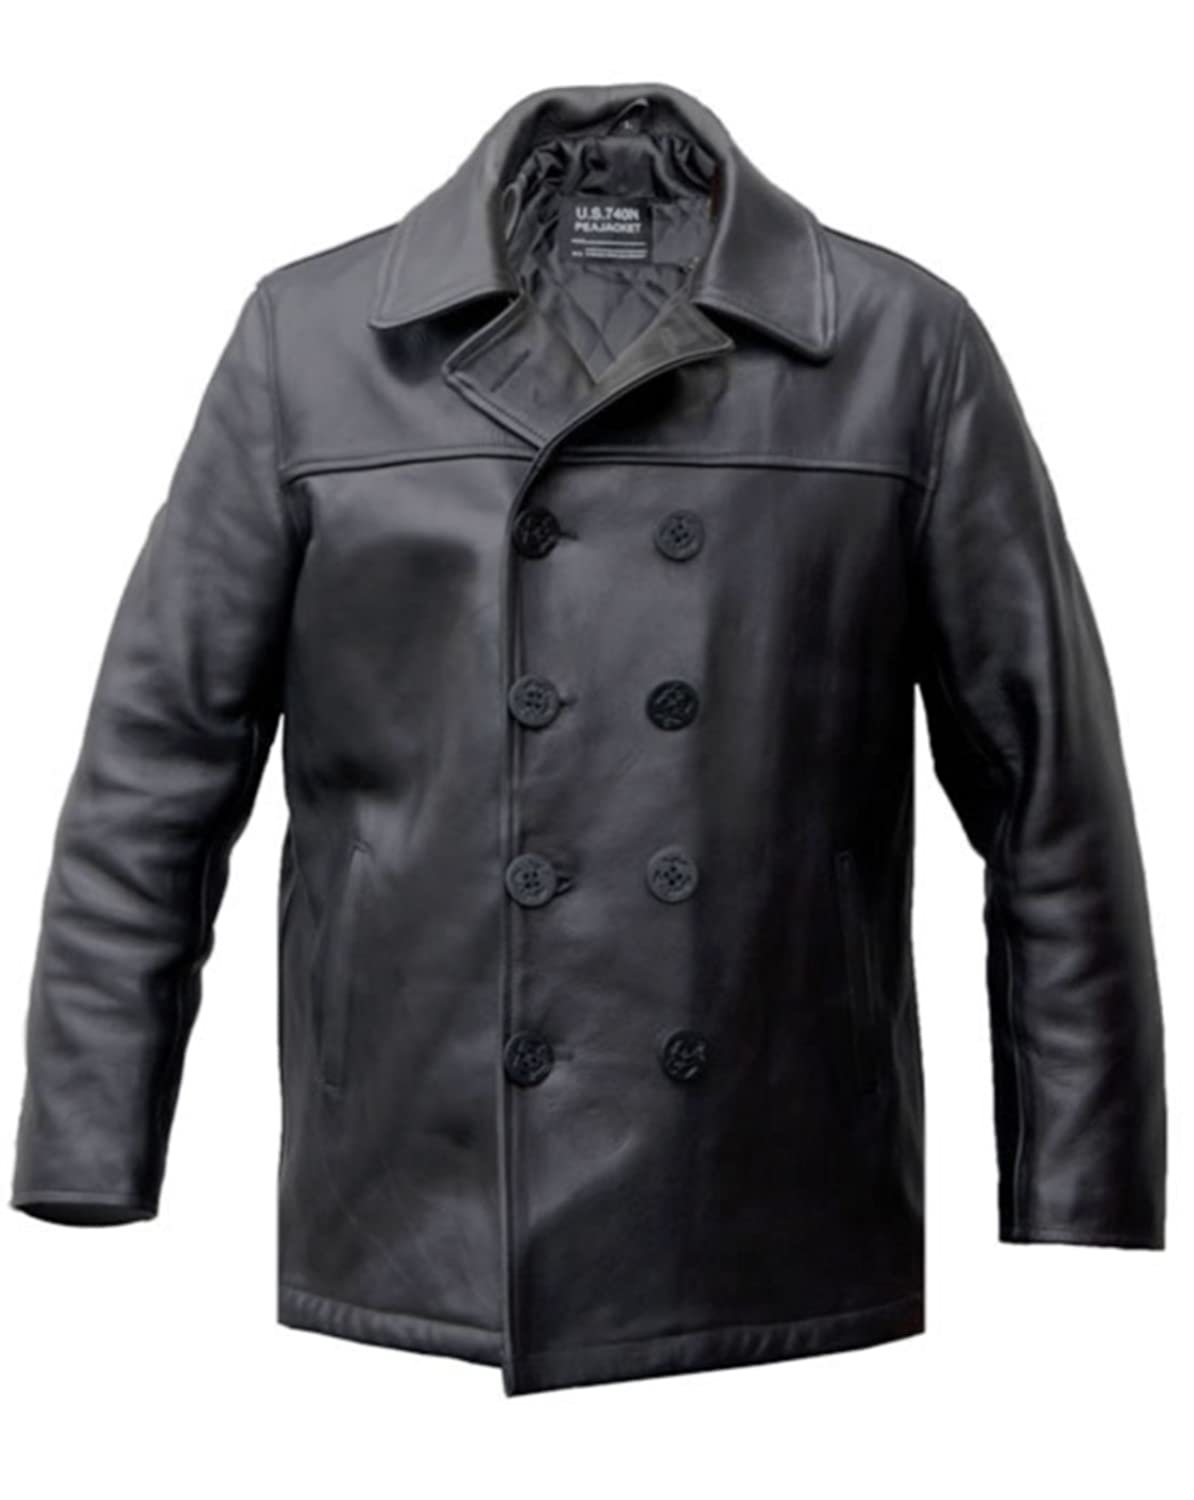 Pea Coat US NAVY Ledermantel kaufen